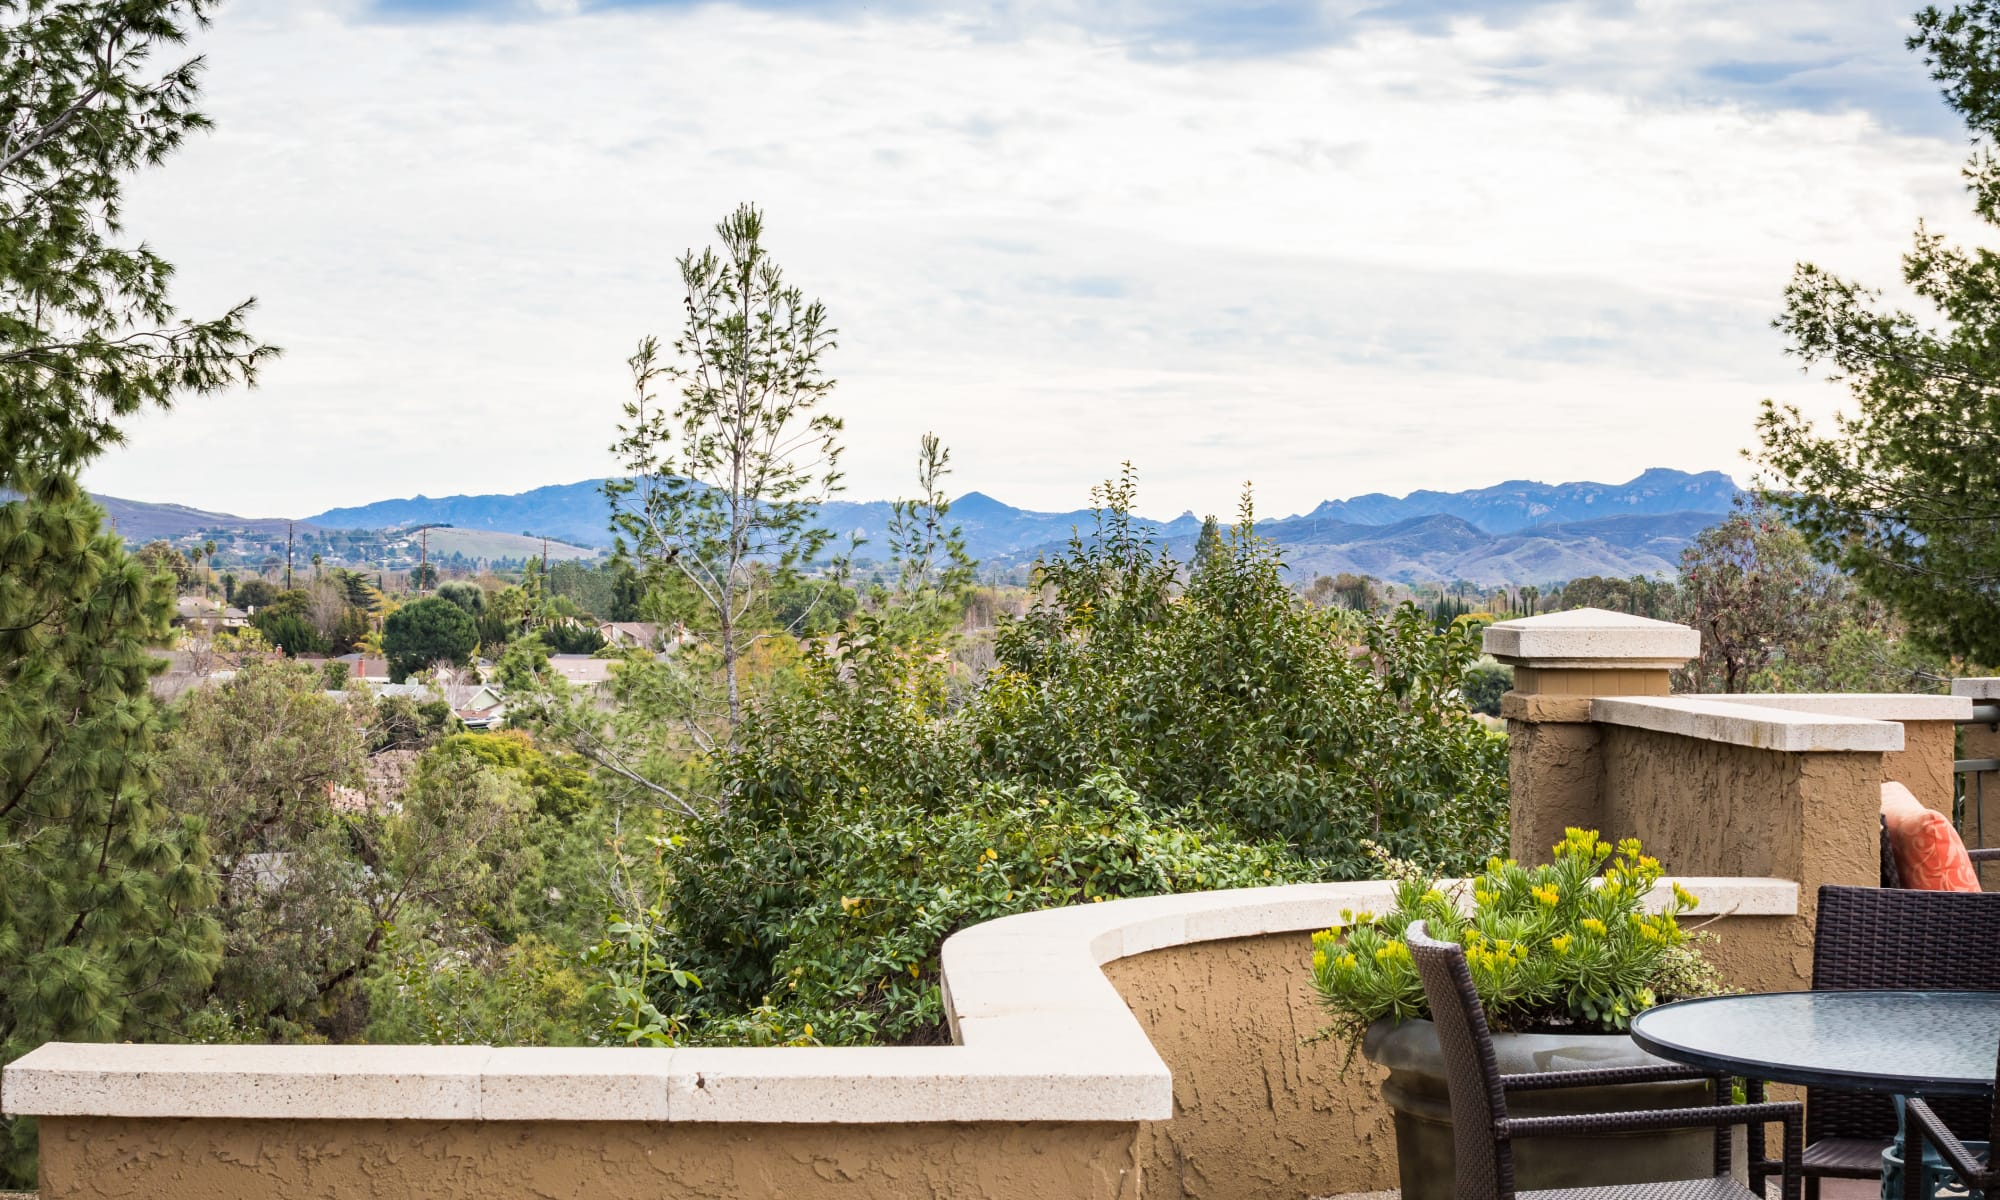 Photo gallery at The Reserve at Thousand Oaks in Thousand Oaks, California